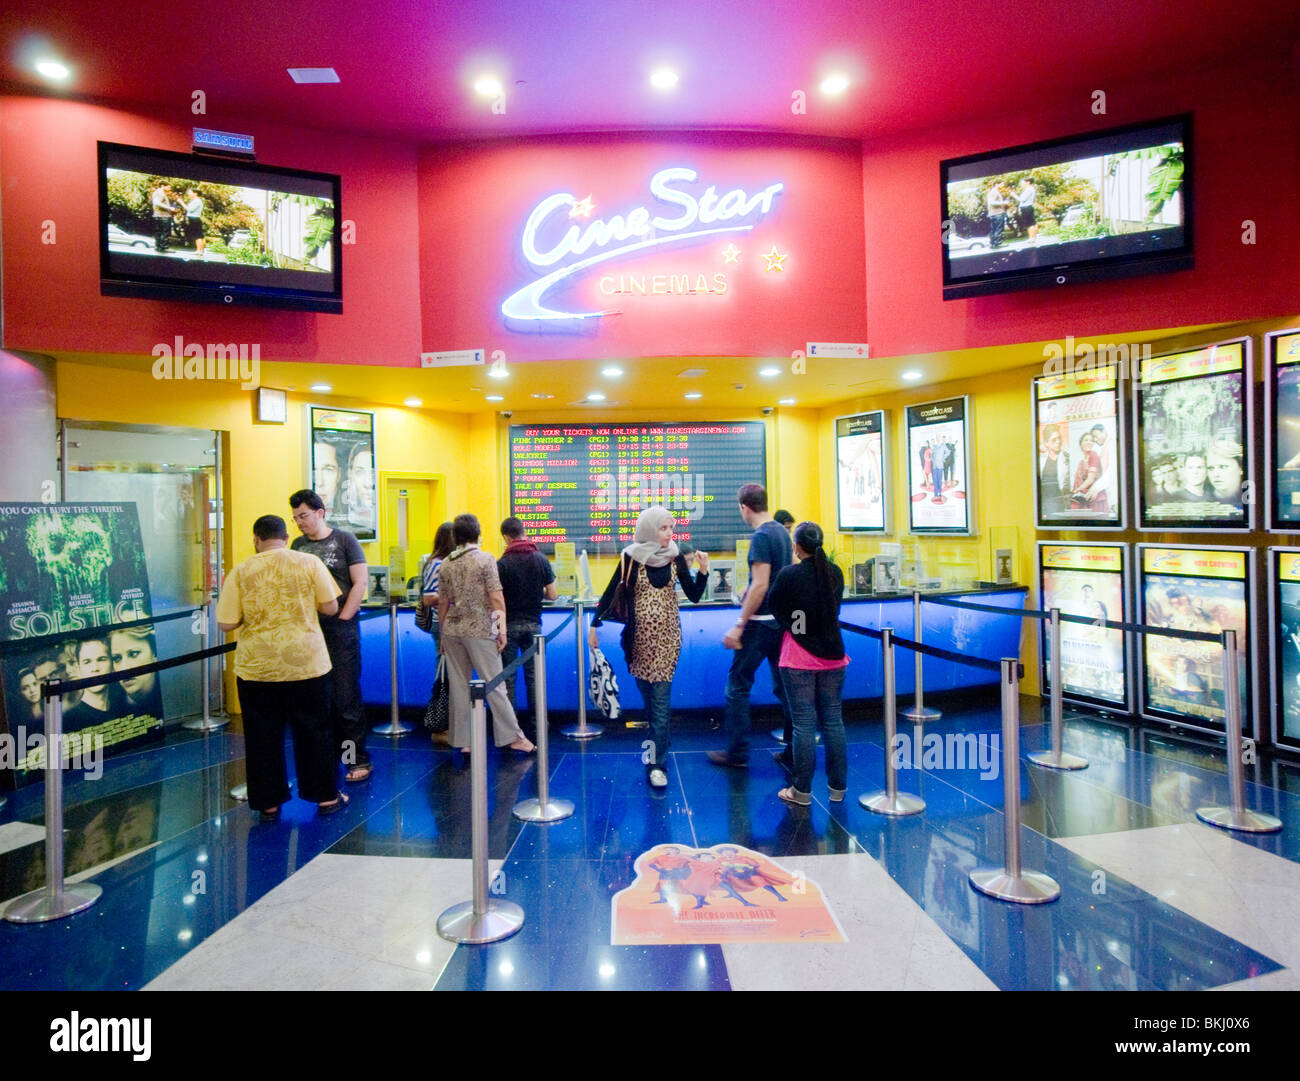 Cinema complex In Dubai - Stock Image